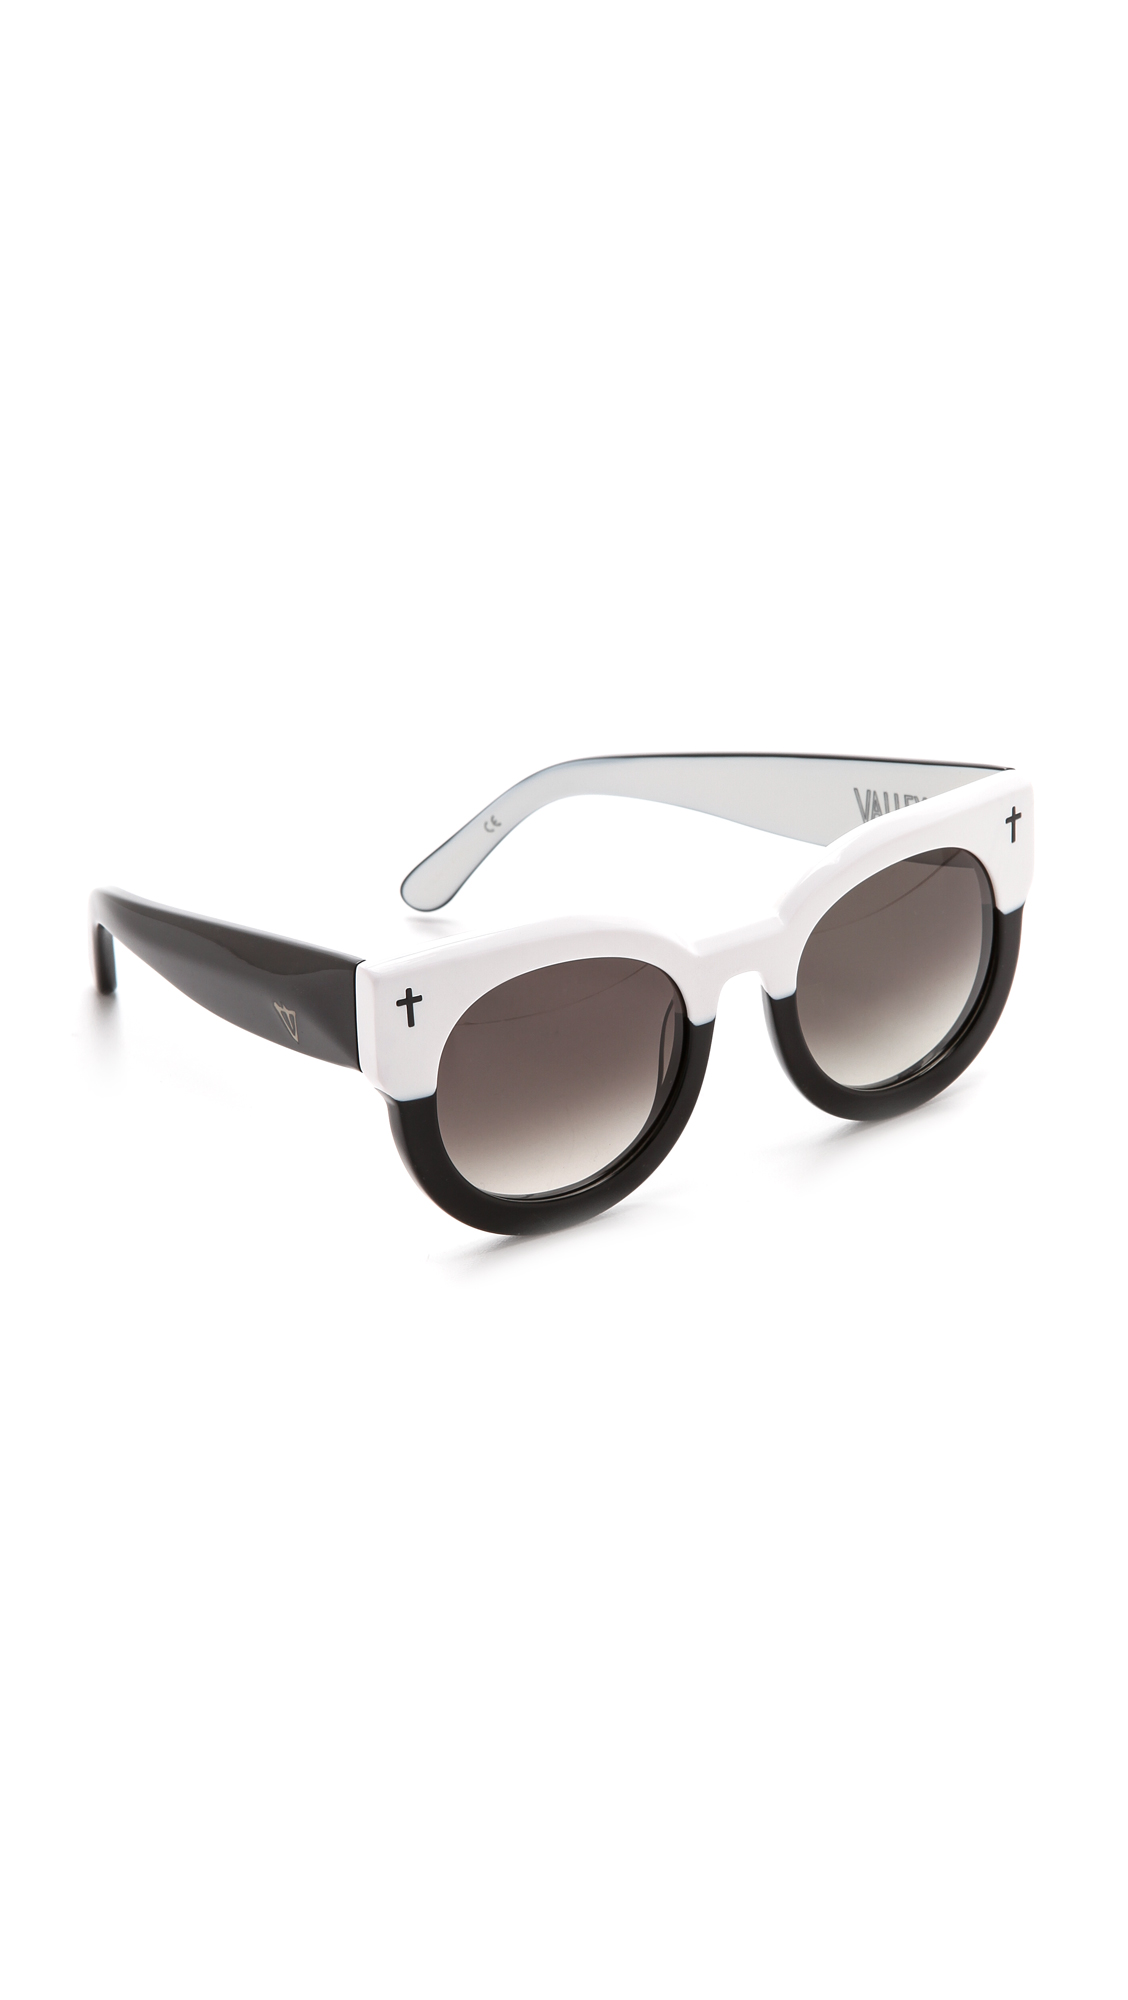 Striking Valley Eyewear sunglasses with glossy two tone frames. Small etched crosses detail the corners, and logo detailing accents the arms. Case and pouch included. Cateye frame. Non polarized lenses. Imported, China. Measurements Width: 5.75in / 14.5cm